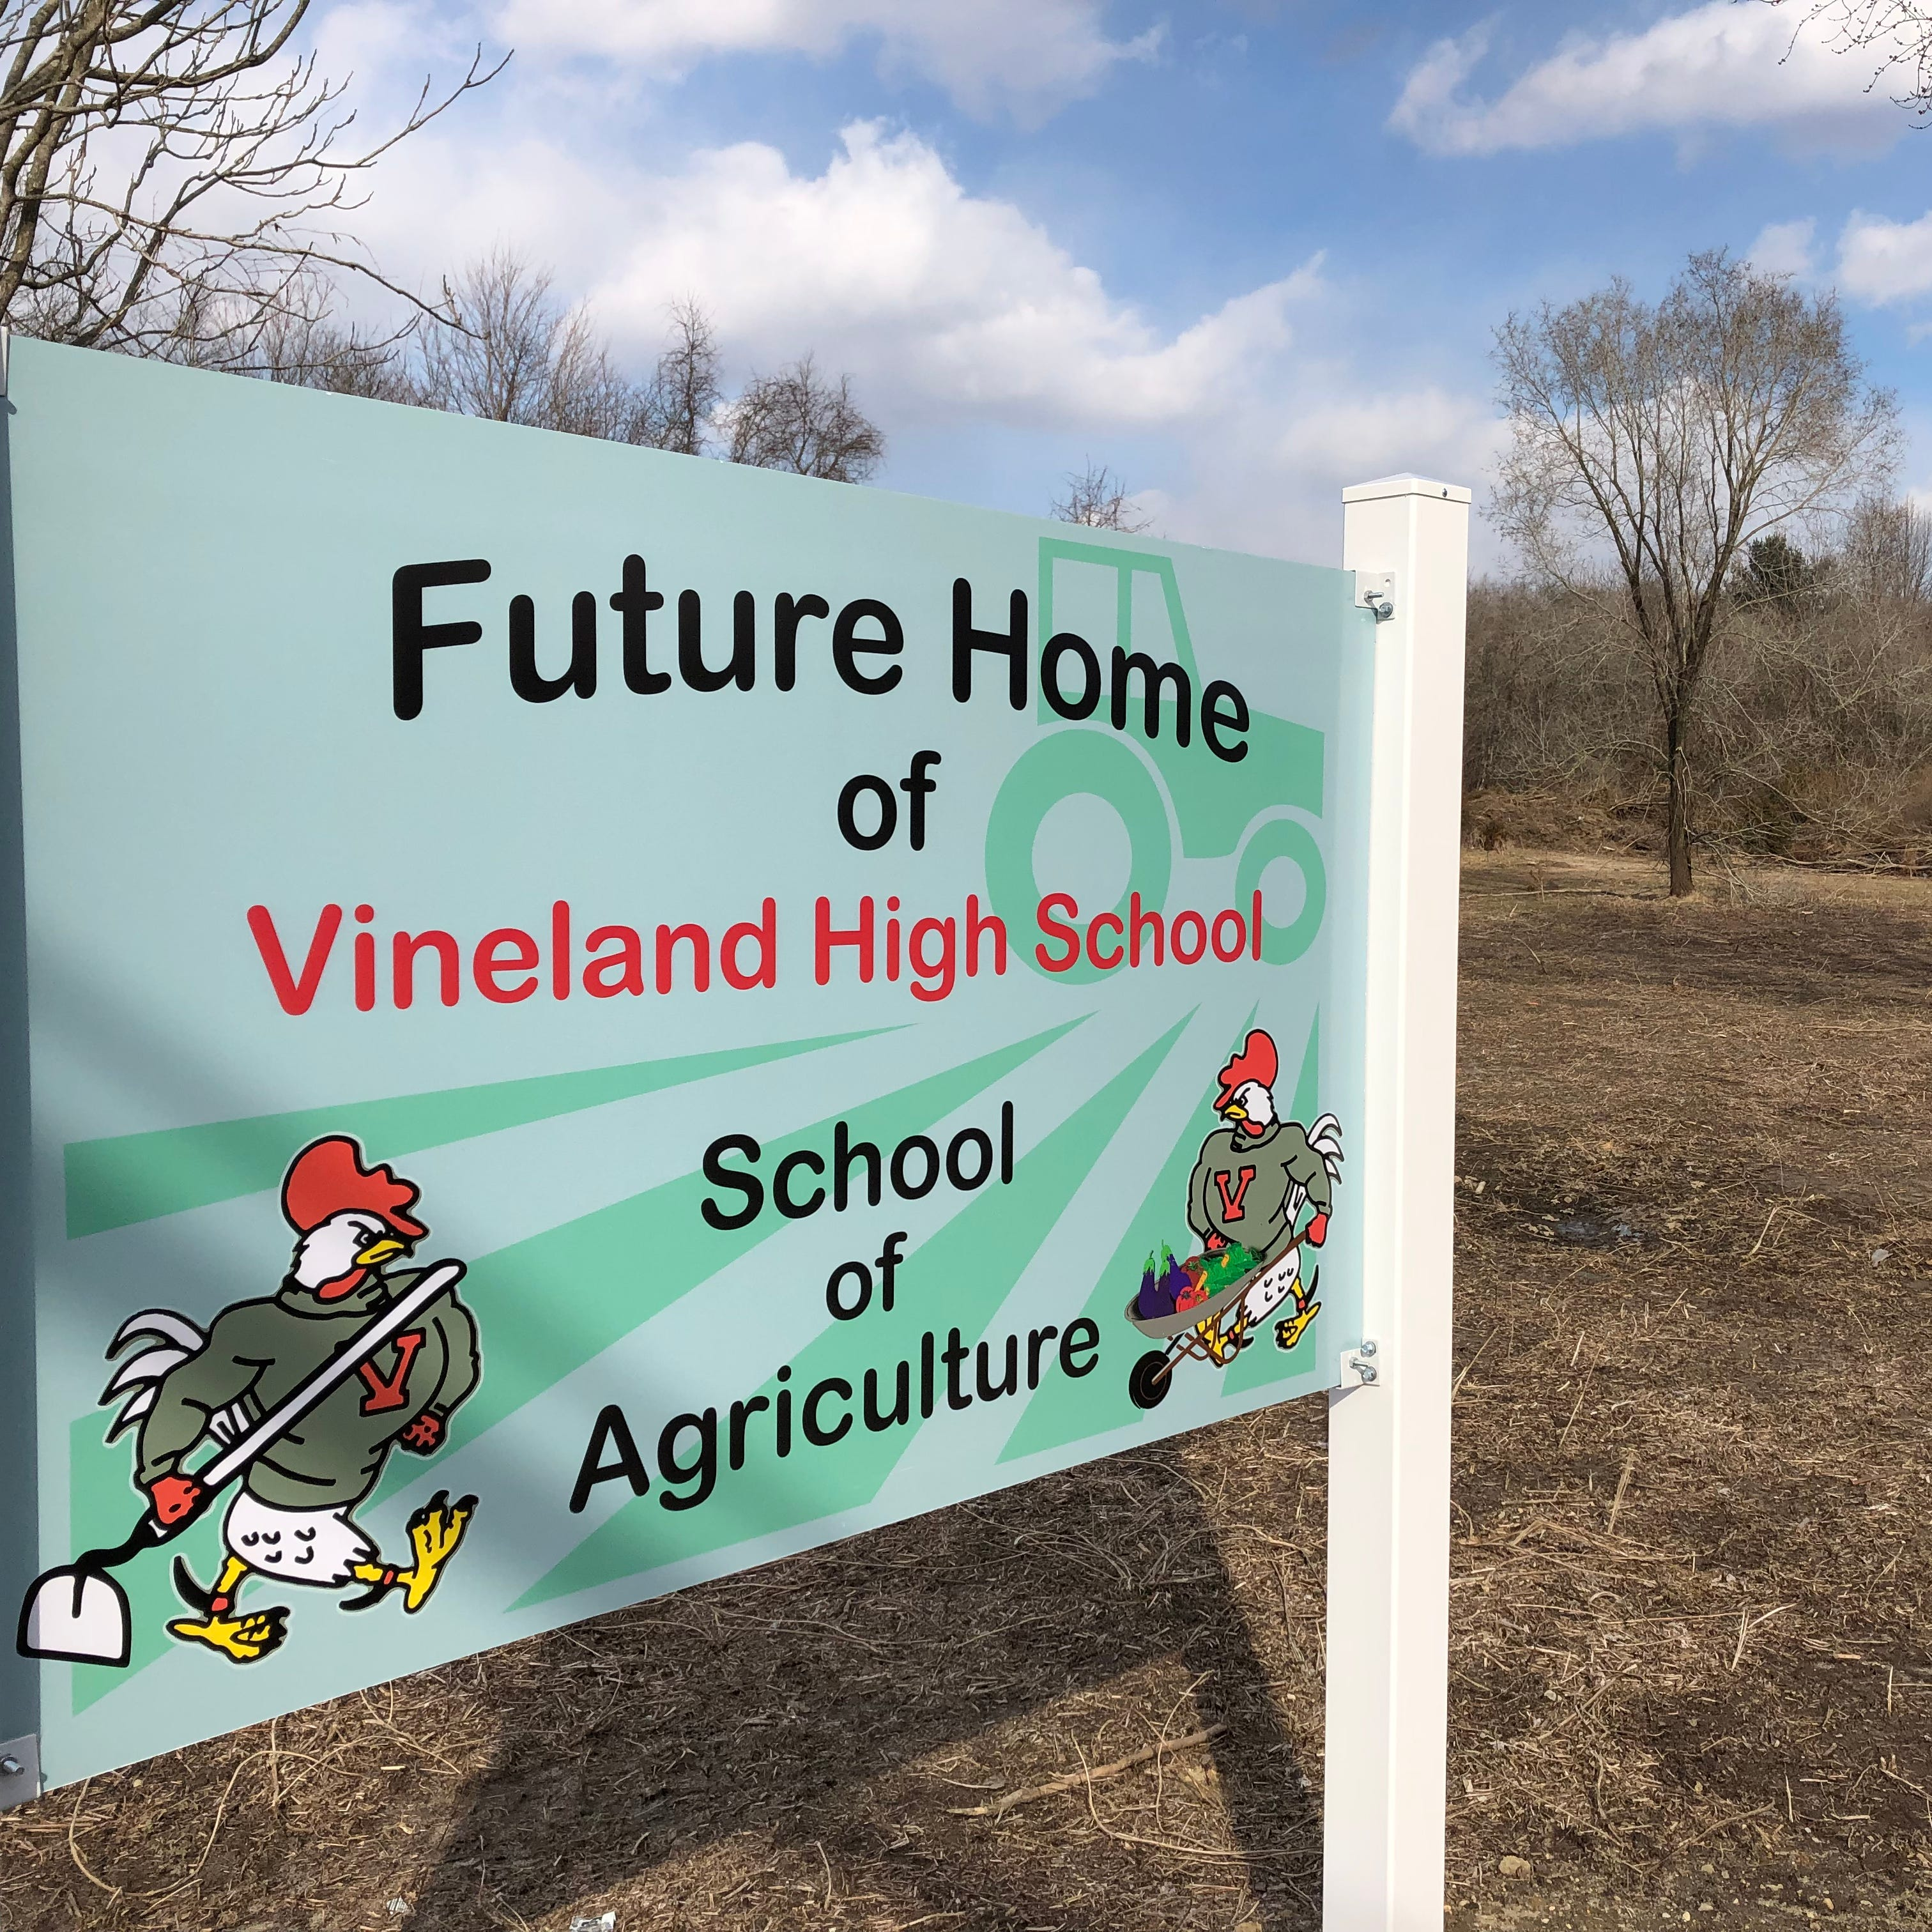 New agricultural program takes root at VHS thanks to land donation and community input